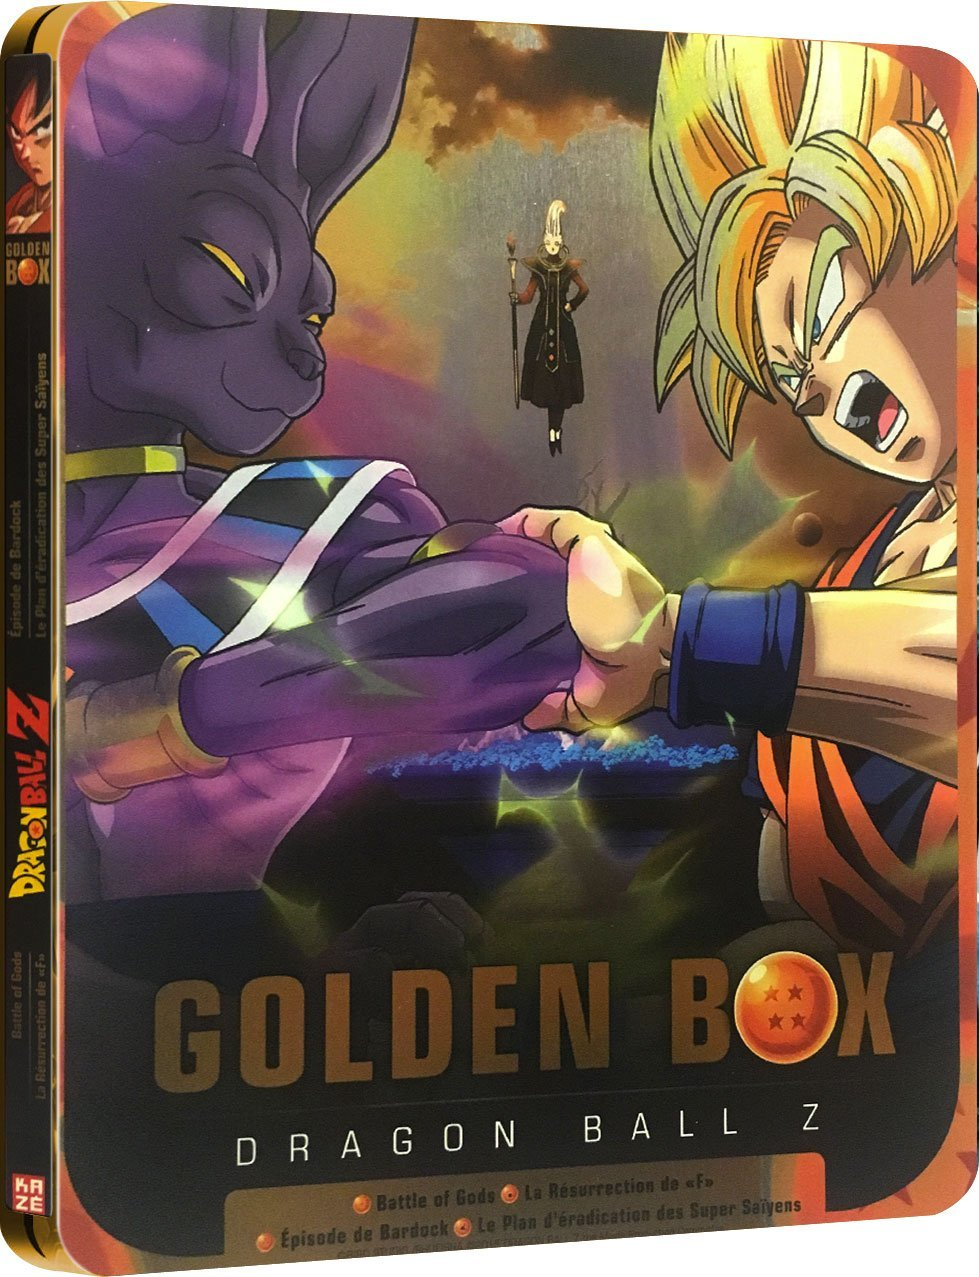 Dragon Ball Z - Golden Box - Steelbox Collector